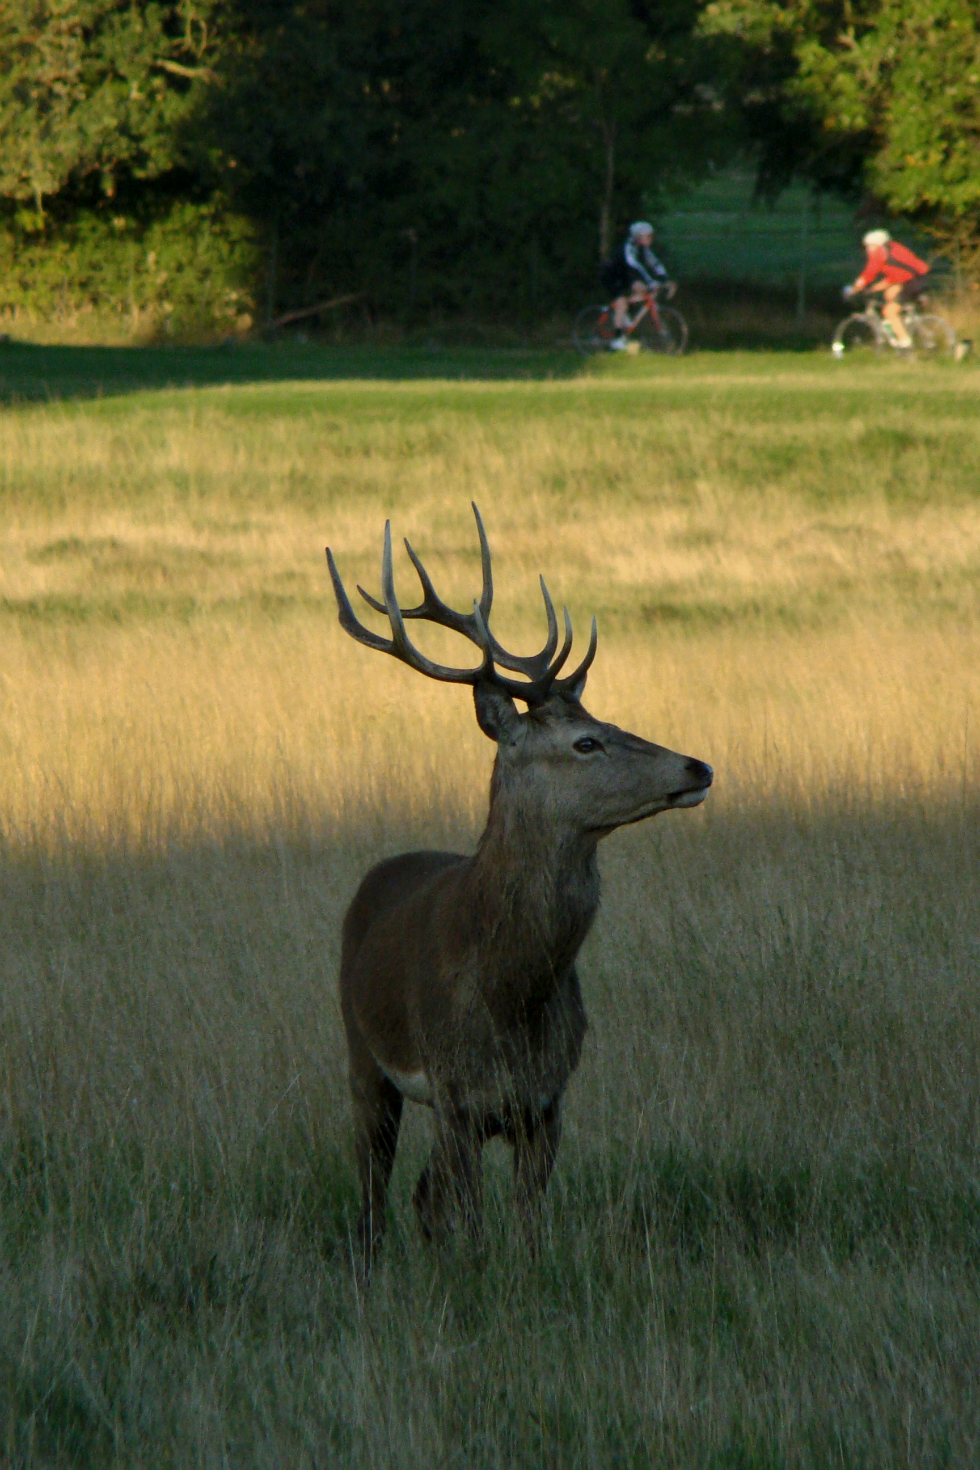 A red deer stag in Richmond Park, London, 30 September 2015